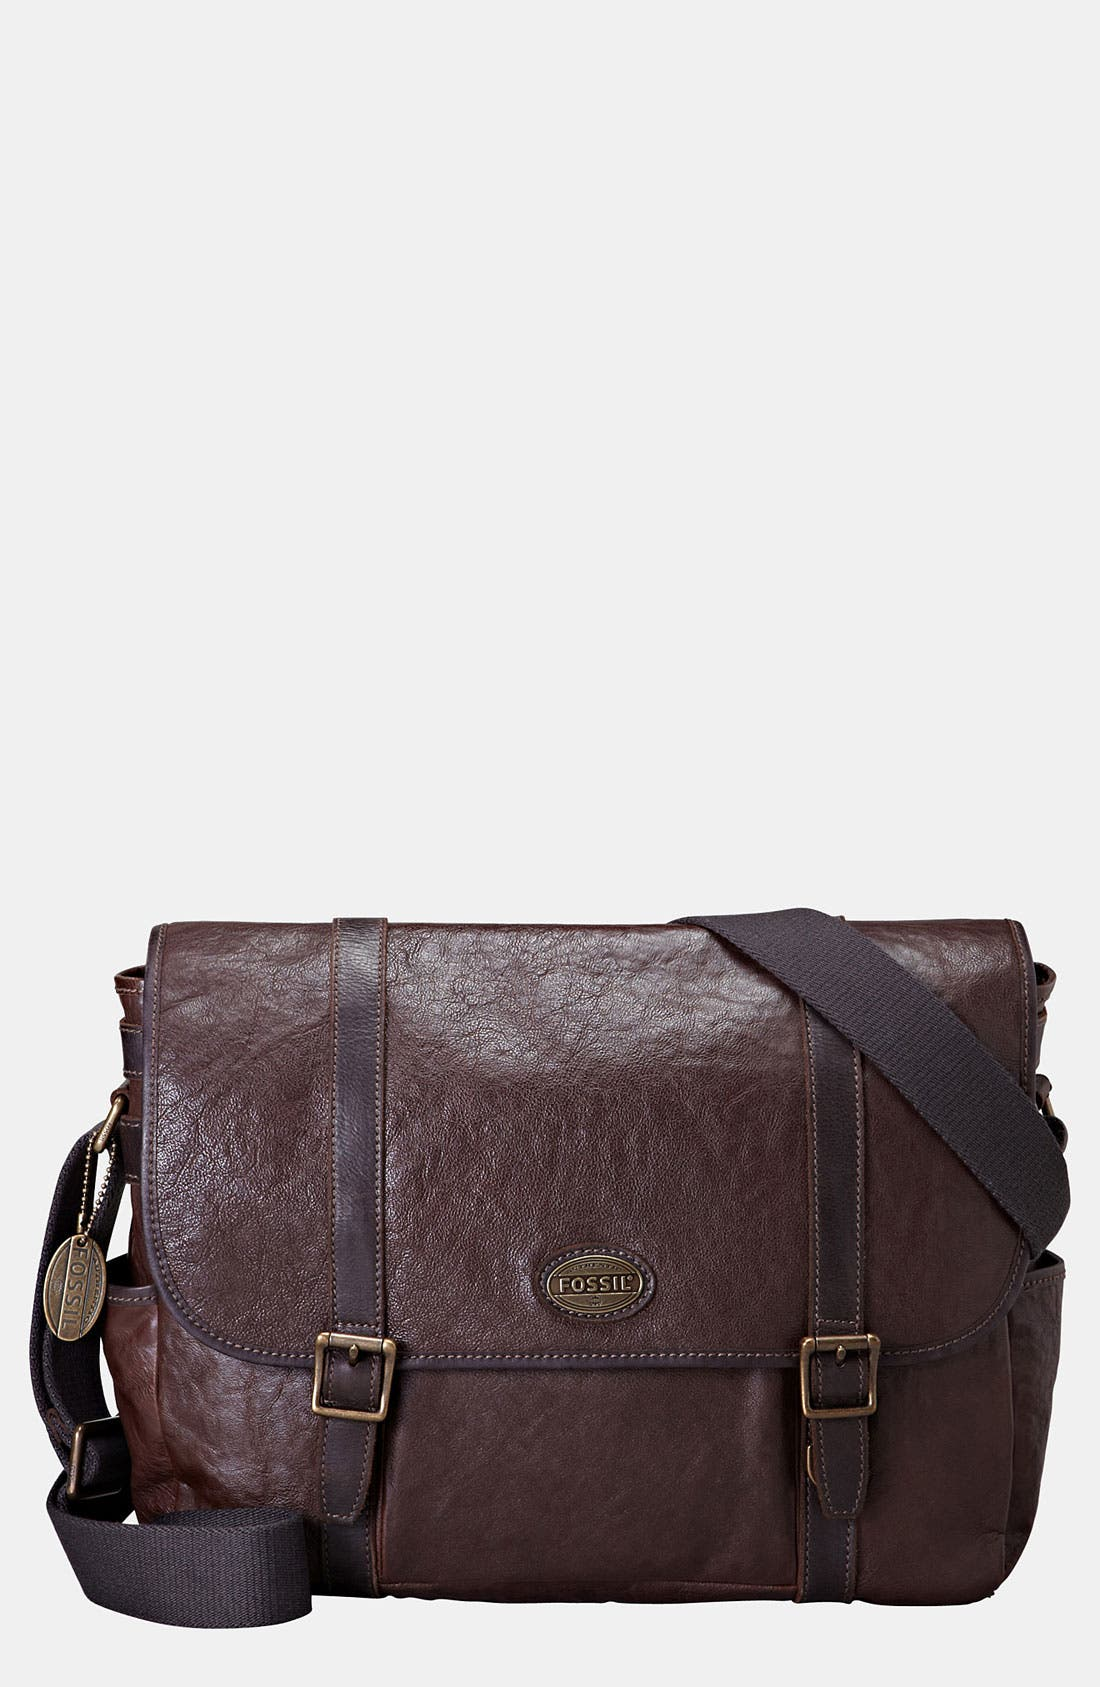 Main Image - Fossil 'Estate' Messenger Bag